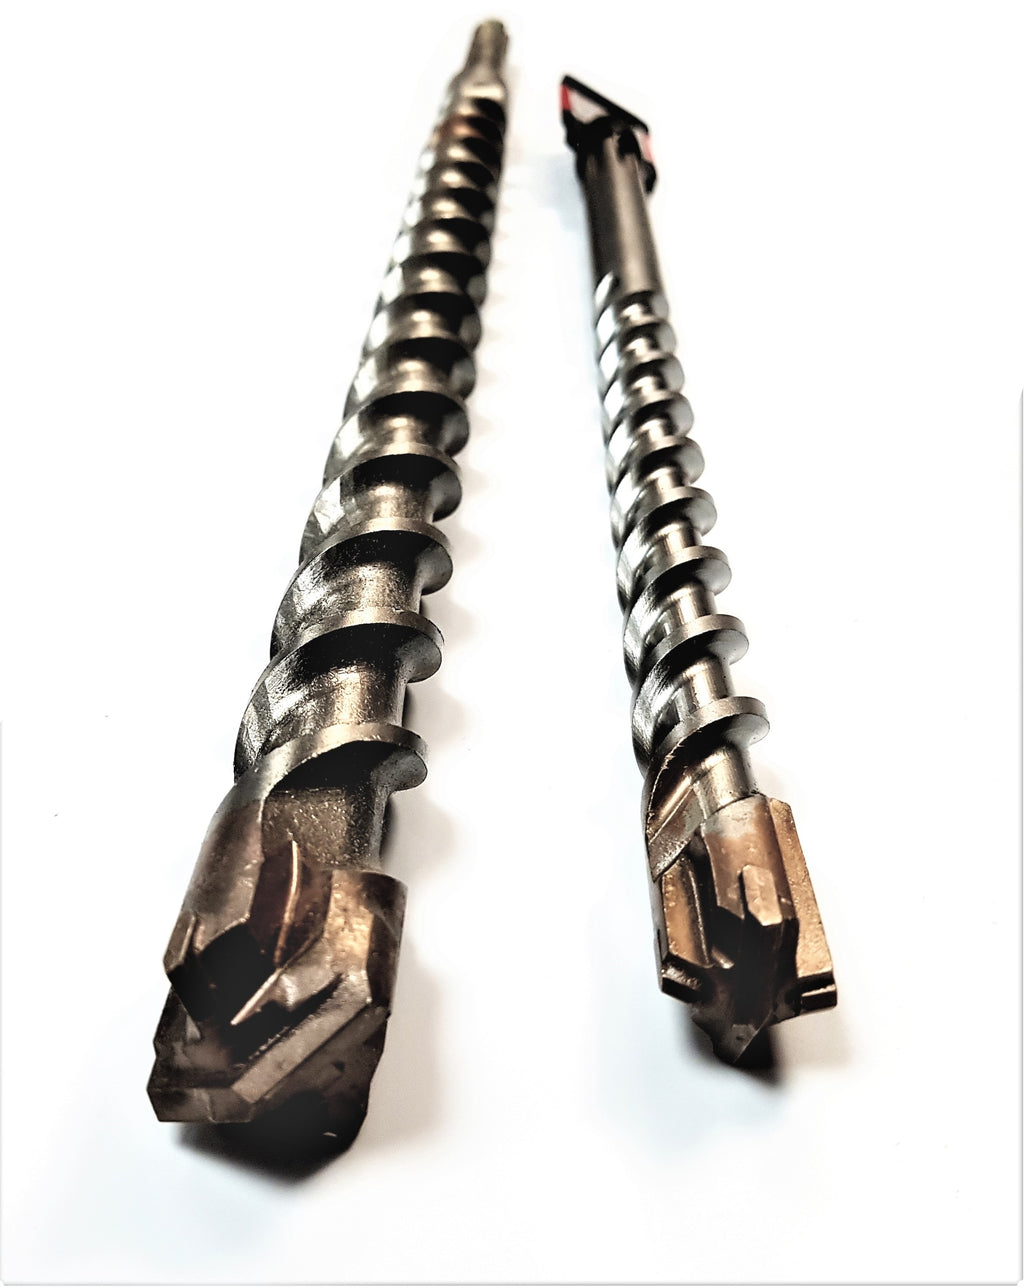 Armeg SDS Max Drill Bits Cross Head. (SDS Max 18mm Shaft Diameter)